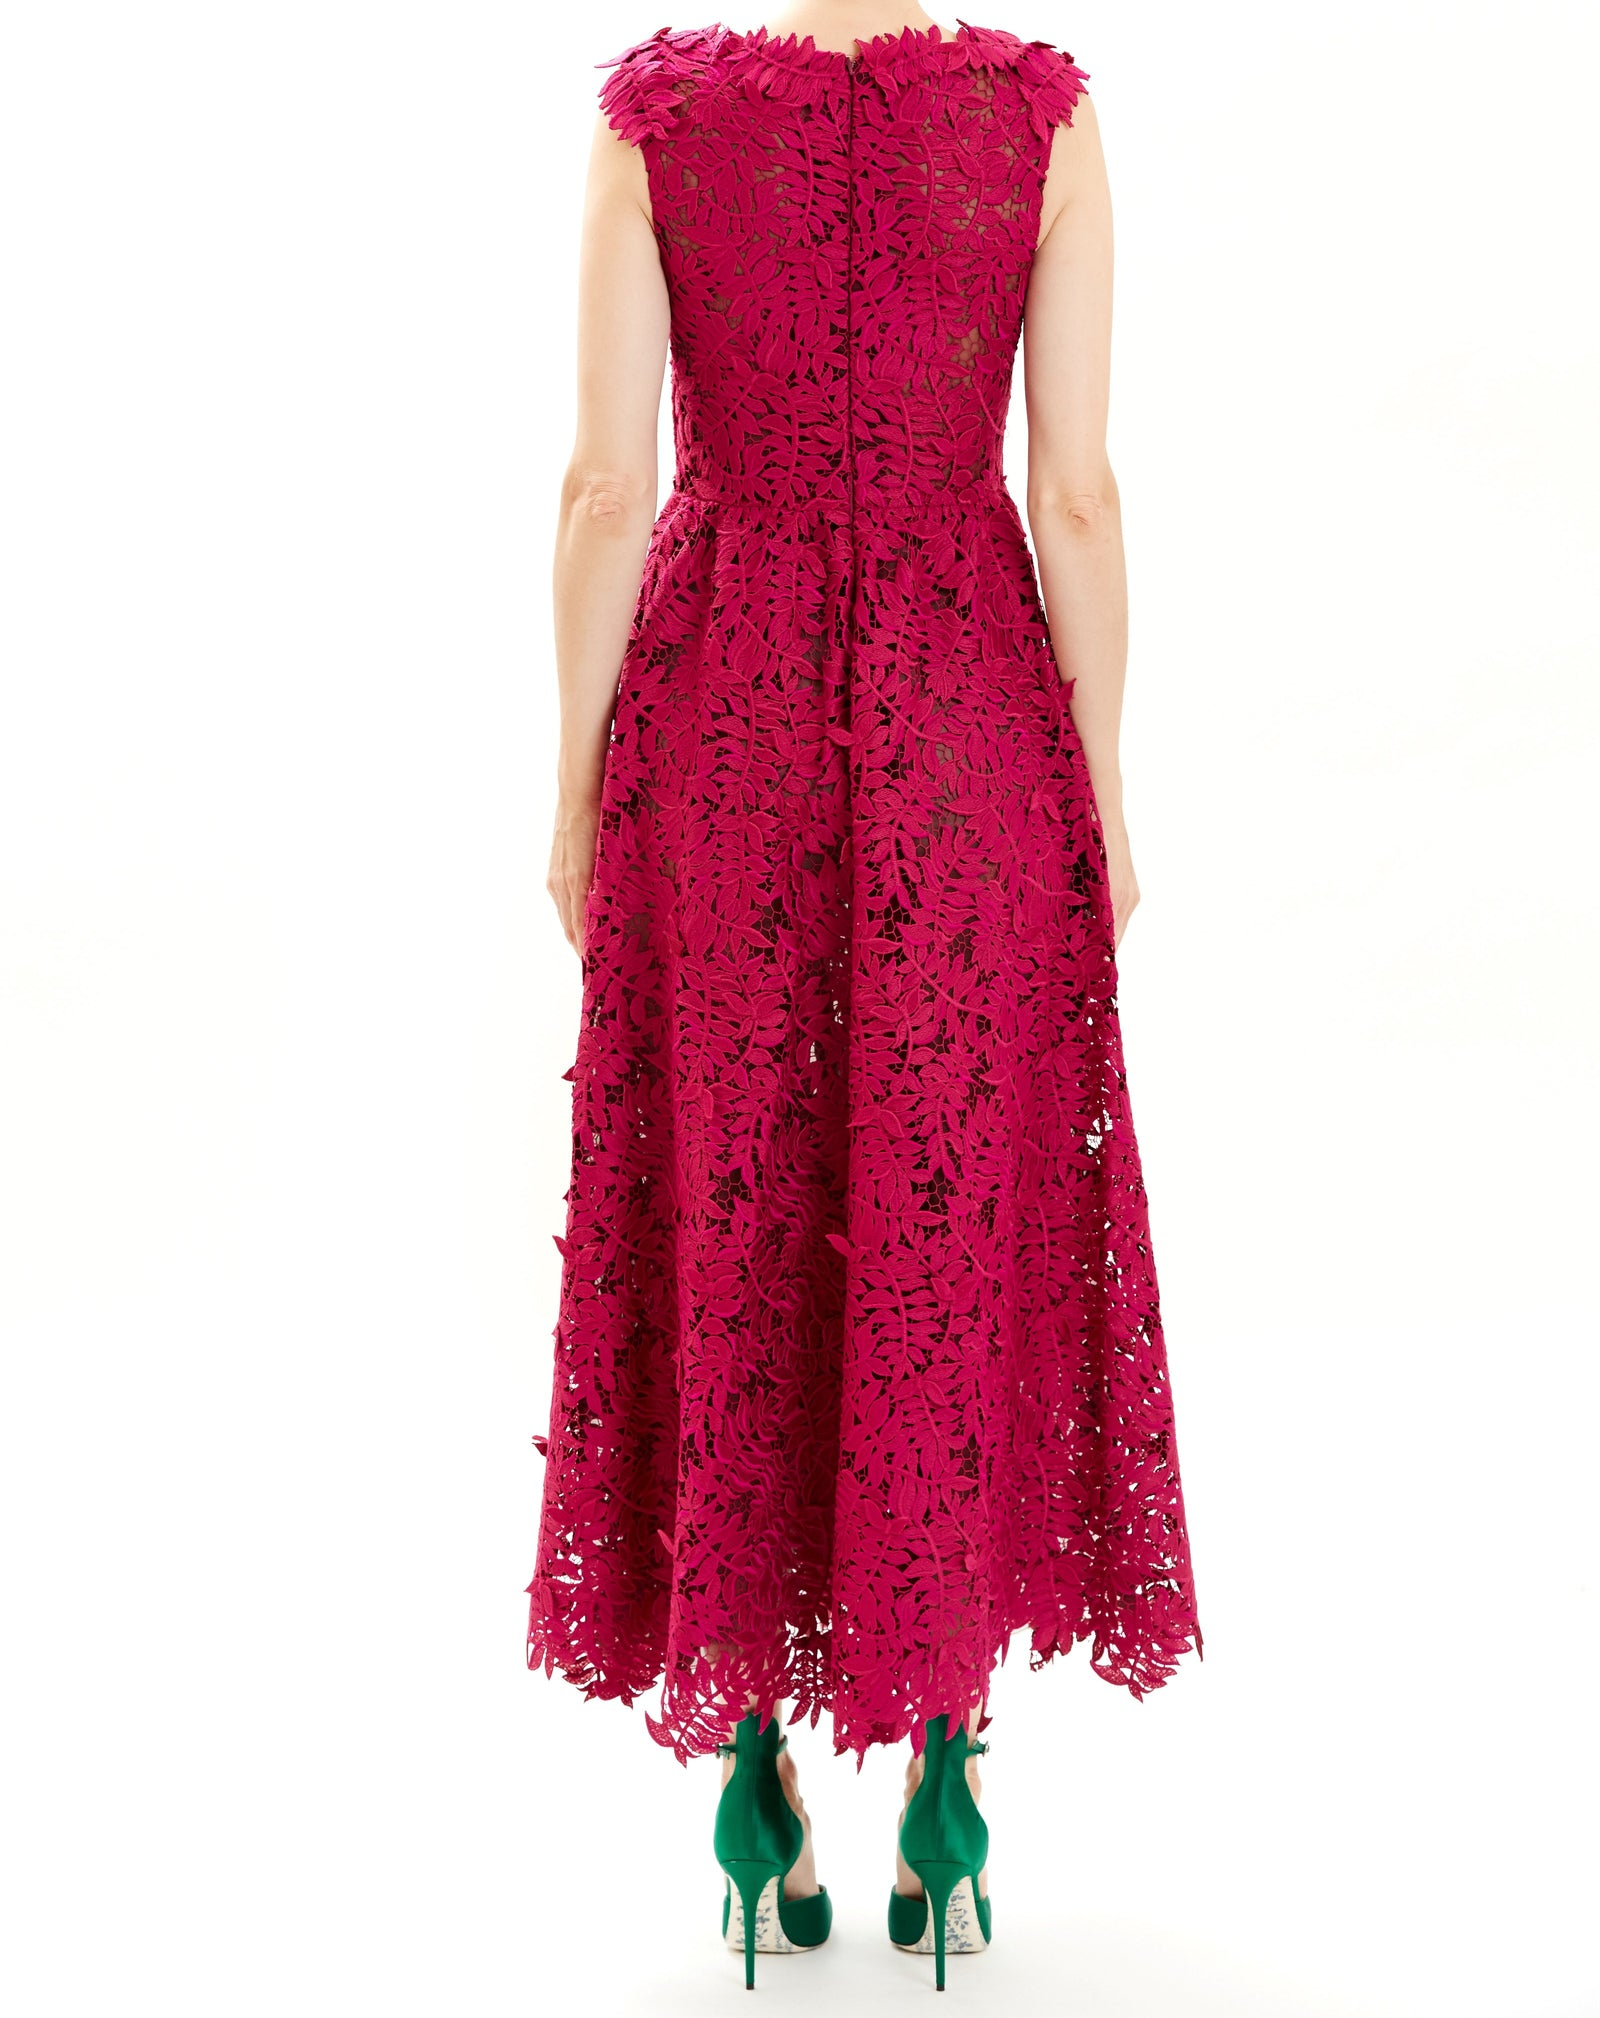 Fuschia Sleeveless Guipure Lace Midi Dress